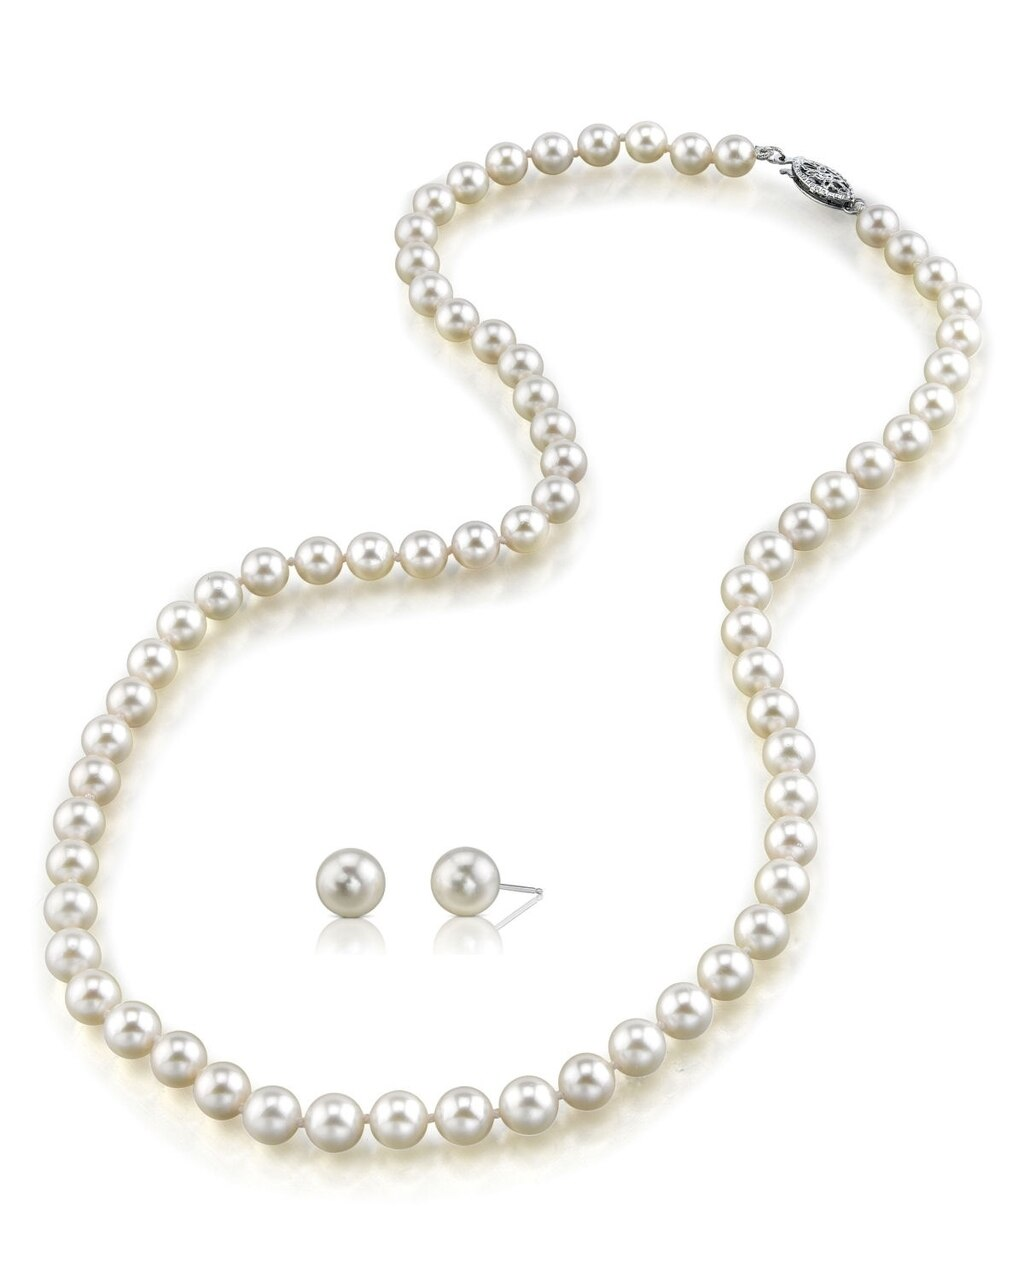 This classic necklace and earring set features 7.5-8.0mm Japanese Akoya pearls